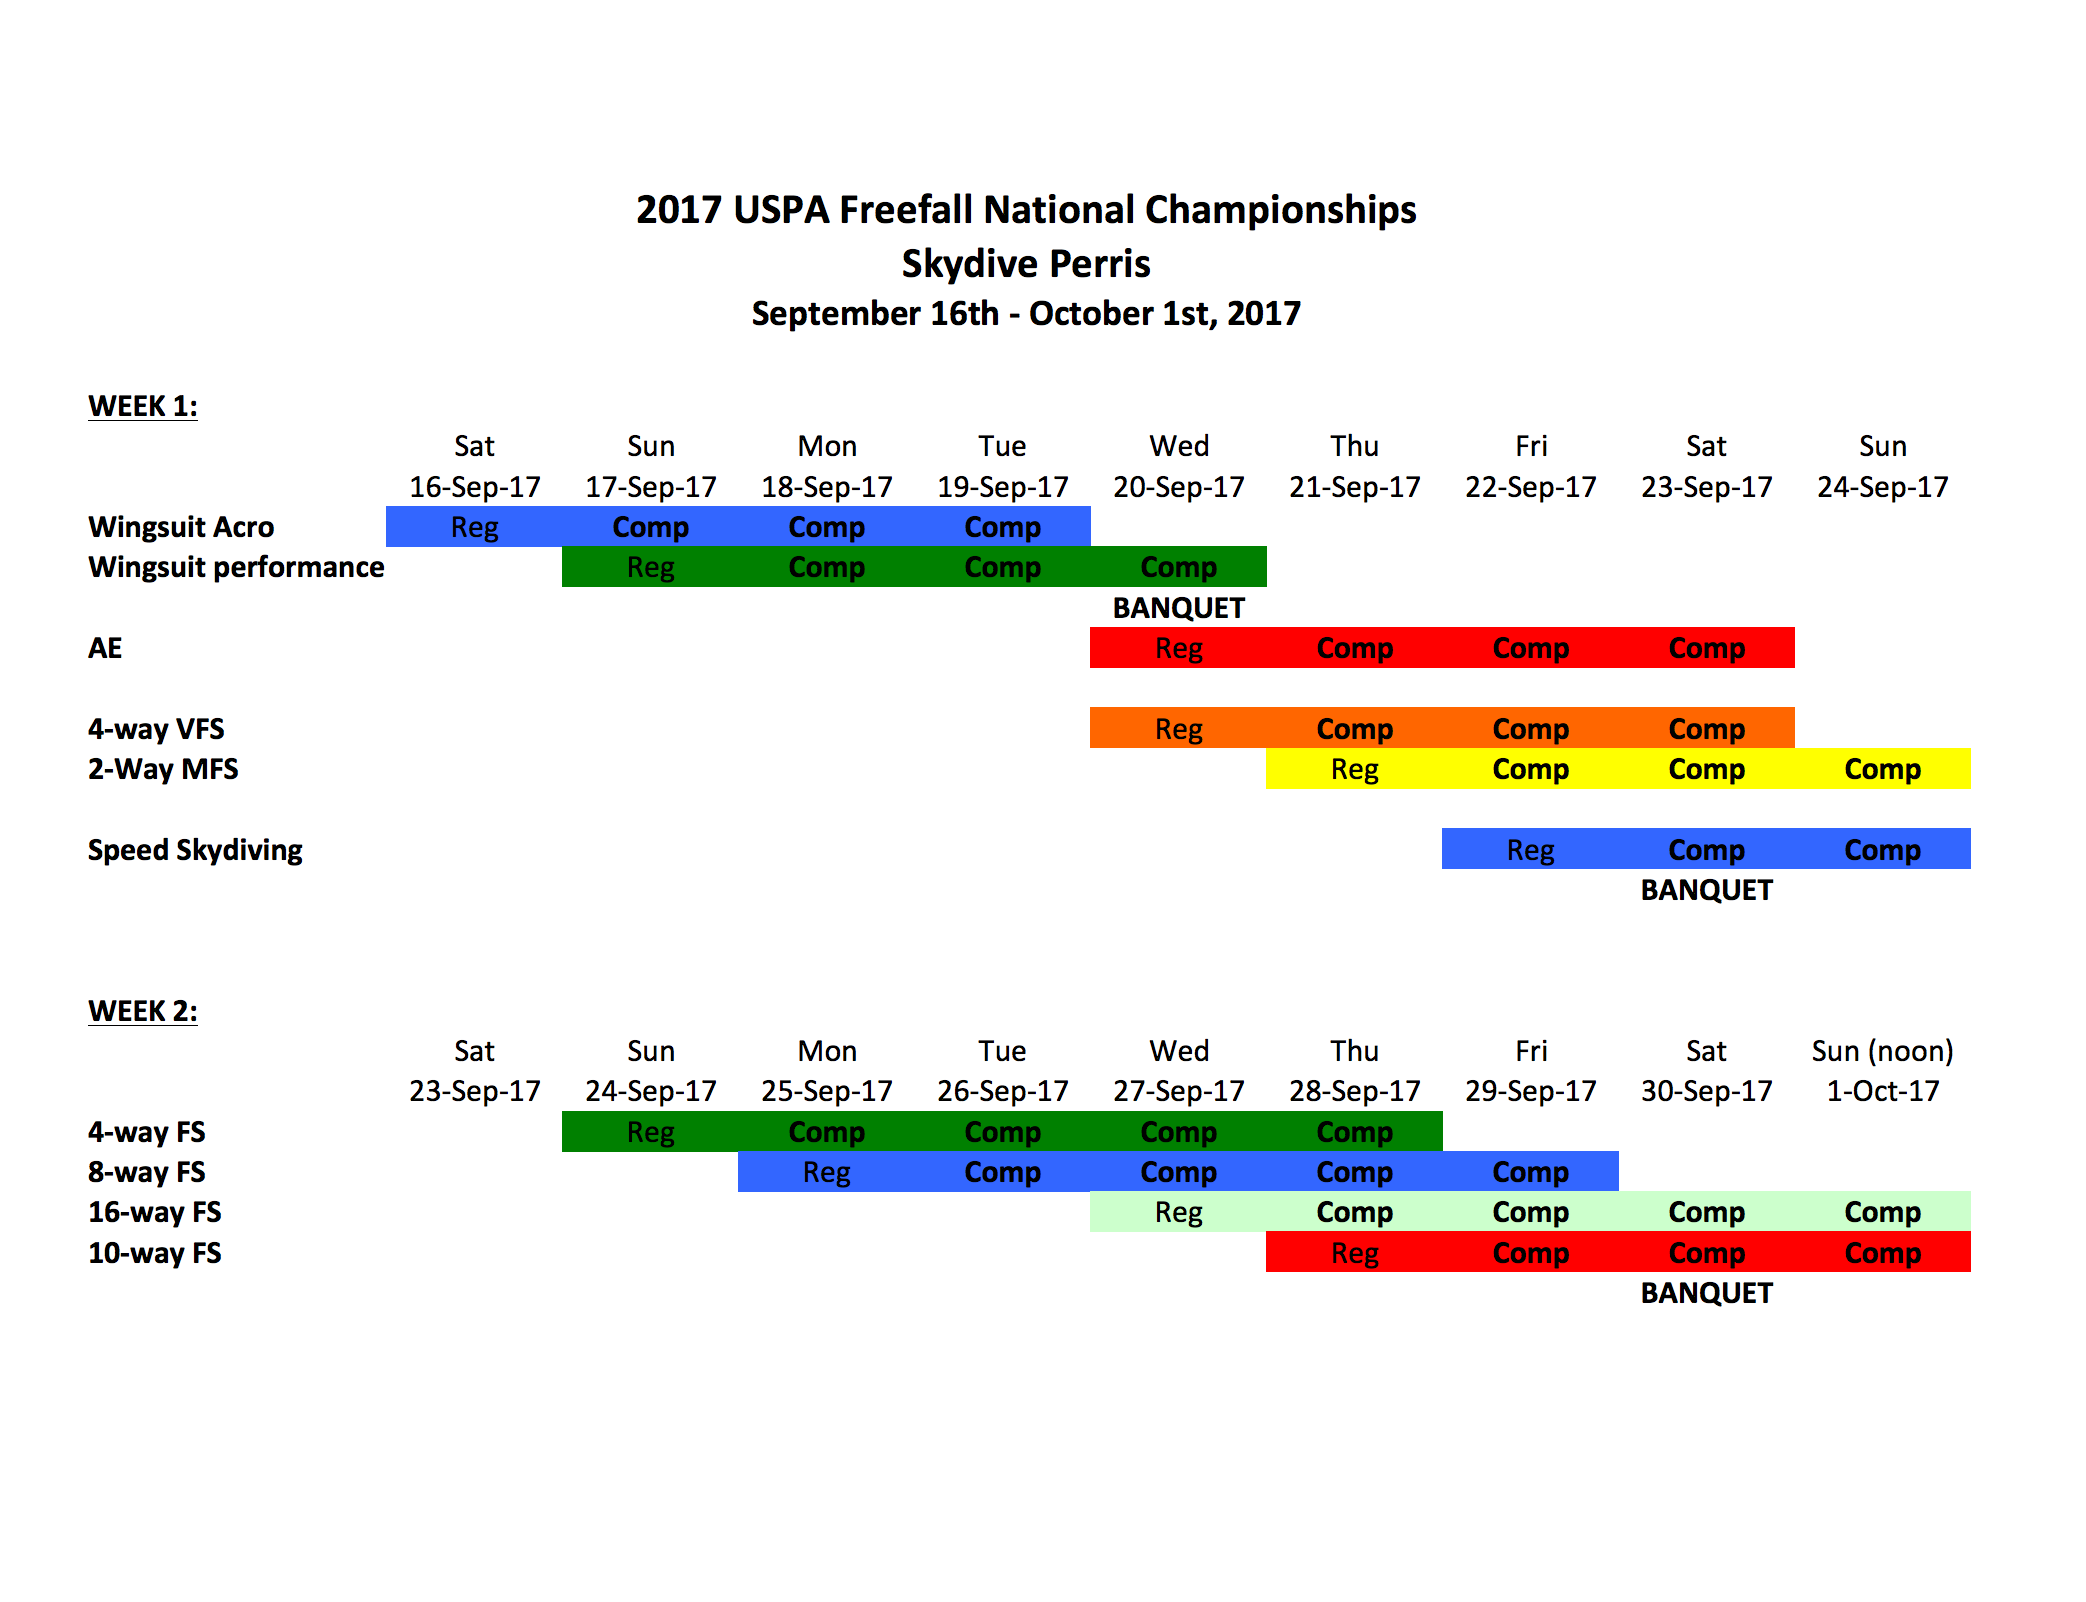 2017 USPA National Skydiving Championships Schedule